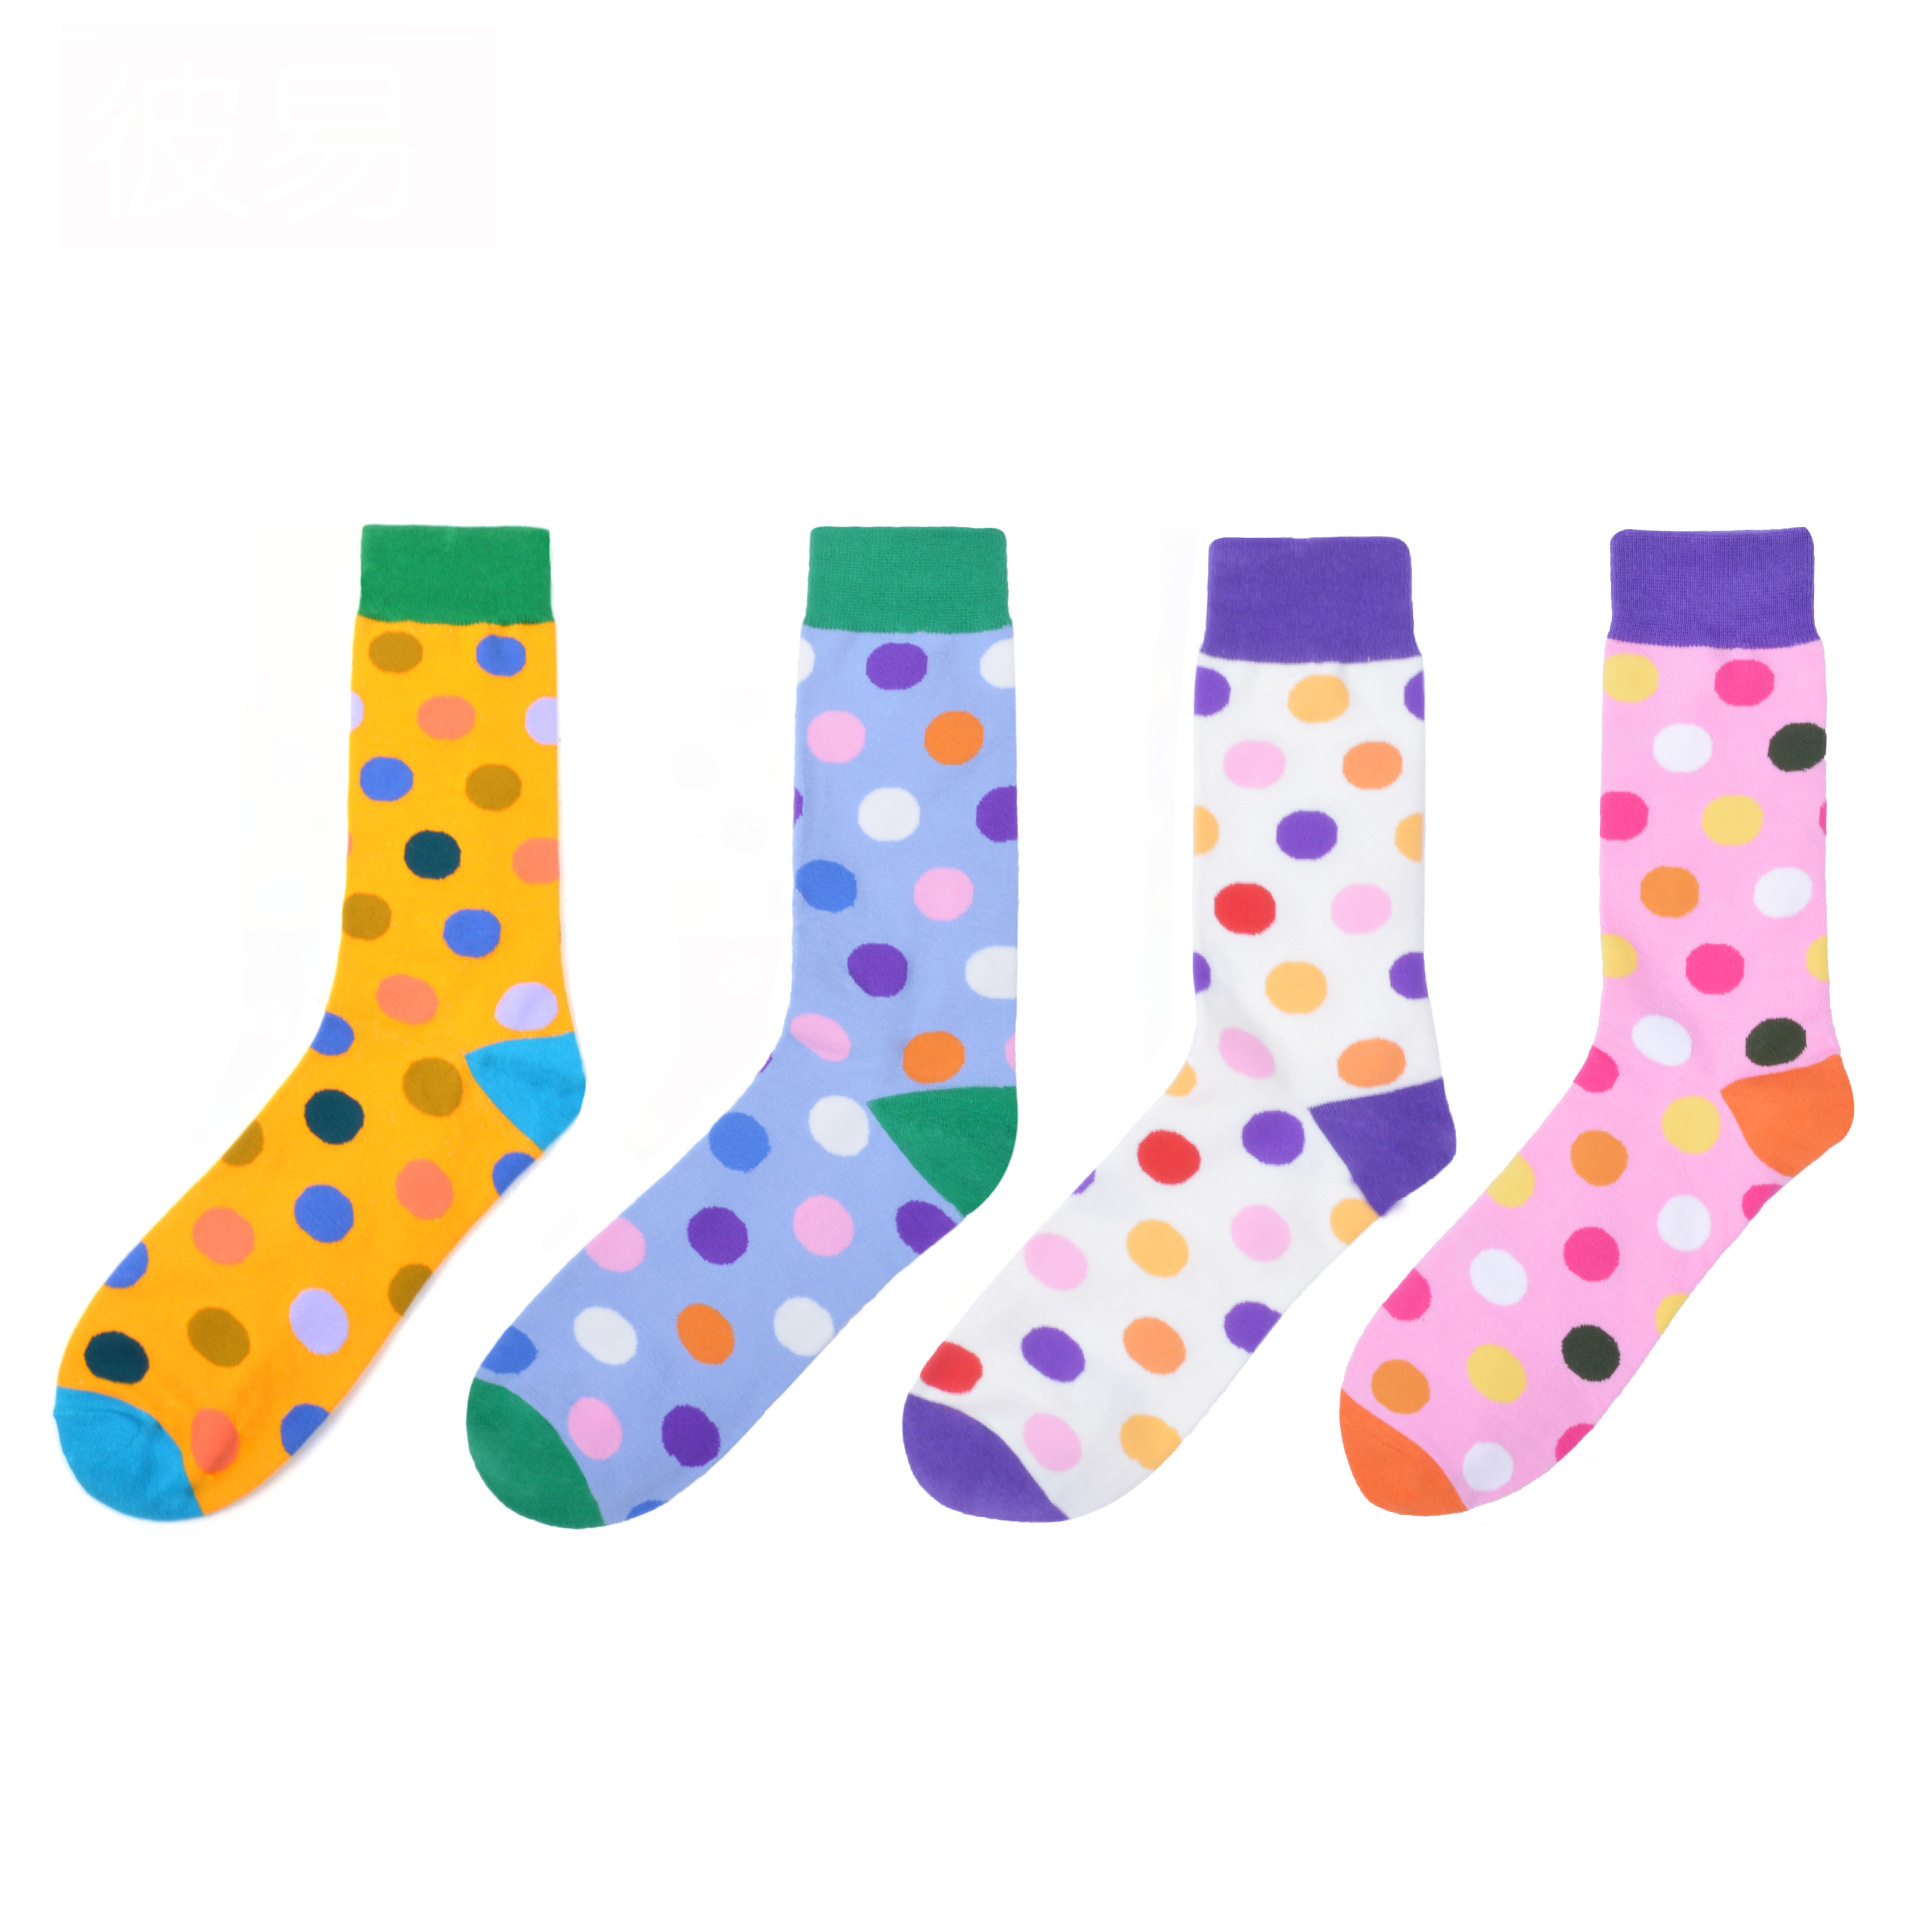 1 Pair 2020 Newest Colorful Men's Coloured Dots Pattern Combed Cotton Socks Novelty Dress Casual Crew Wedding Socks